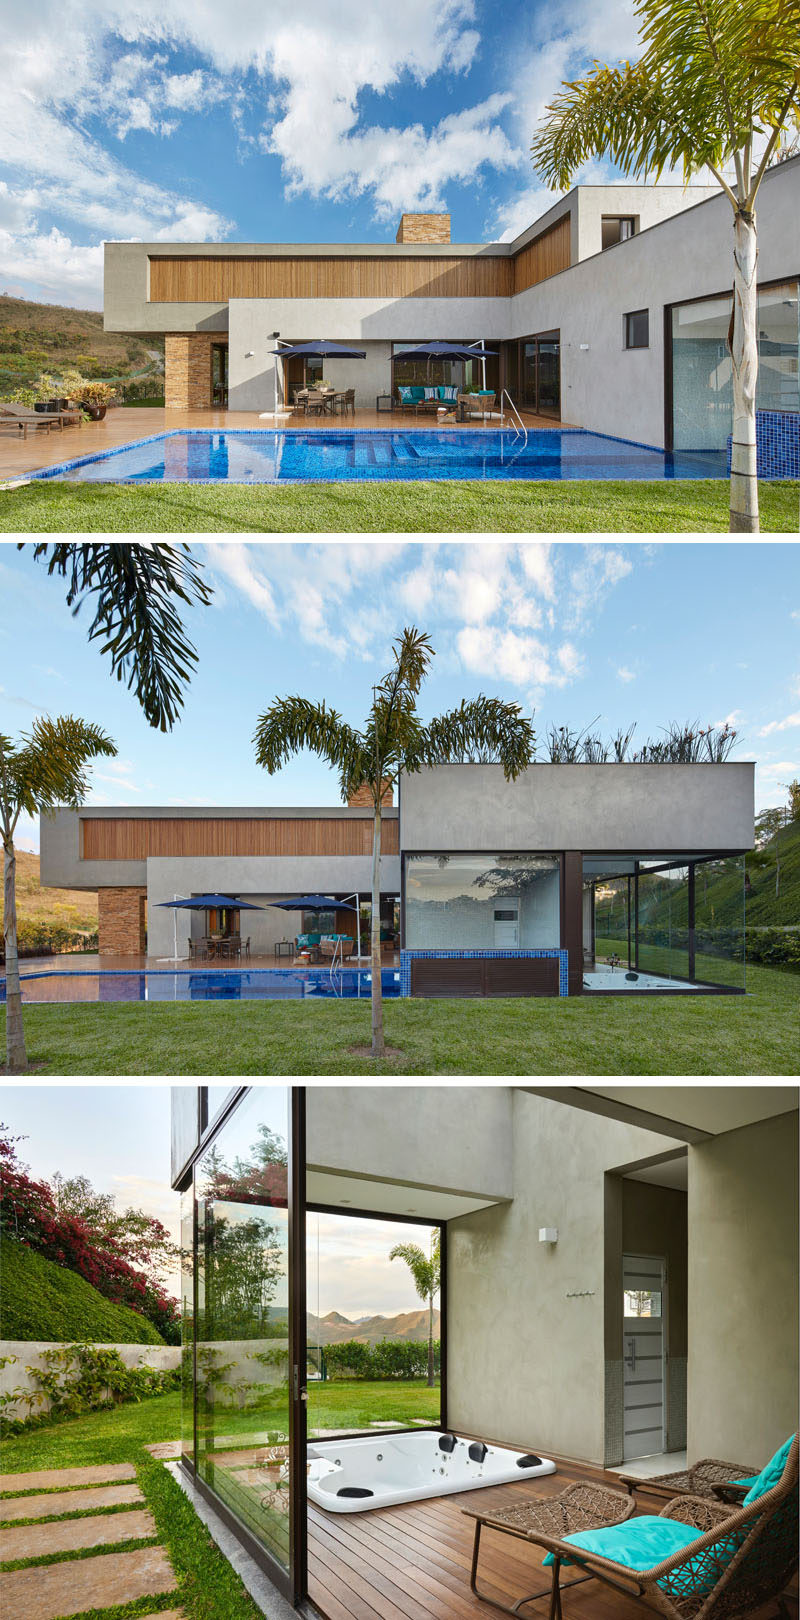 This modern house in Brazil has a swimming pool with a large deck. Beside the swimming pool is an enclosed hot tub that can be enjoyed year round. #SwimmingPool #HotTub #Spa